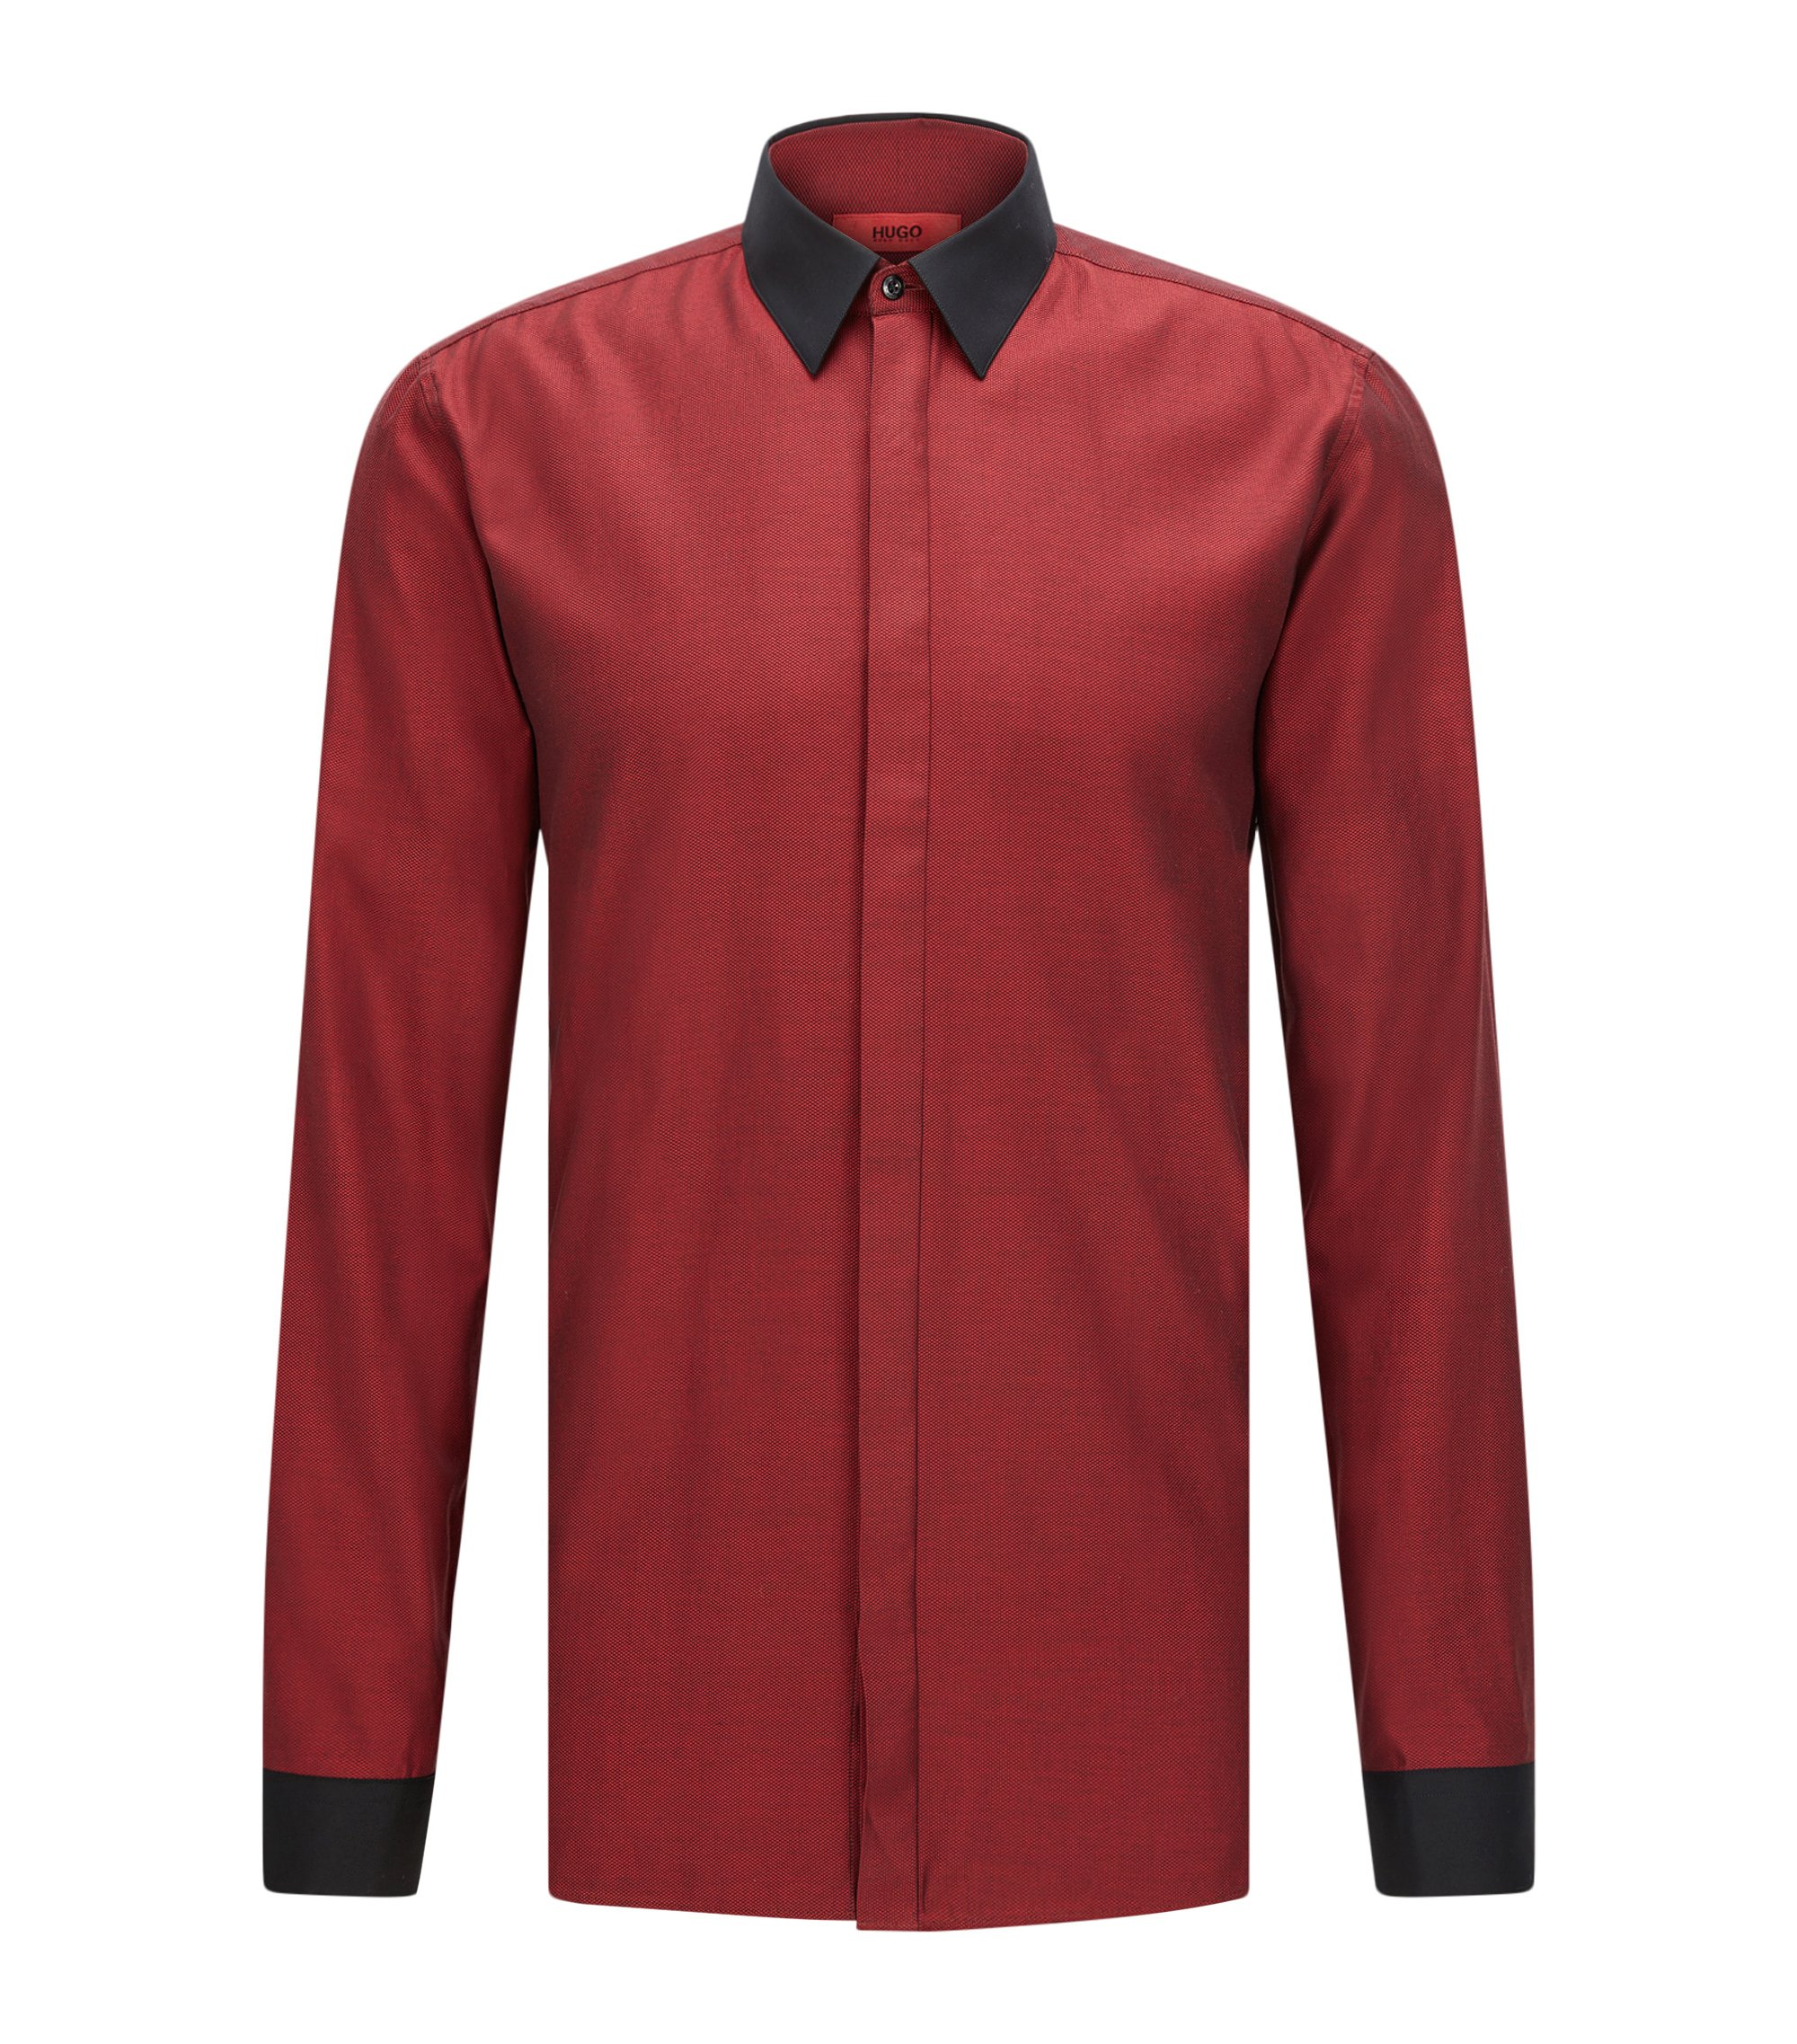 'Elisha' | Extra Slim Fit, Colorblock Easy Iron Cotton Dress Shirt, Red